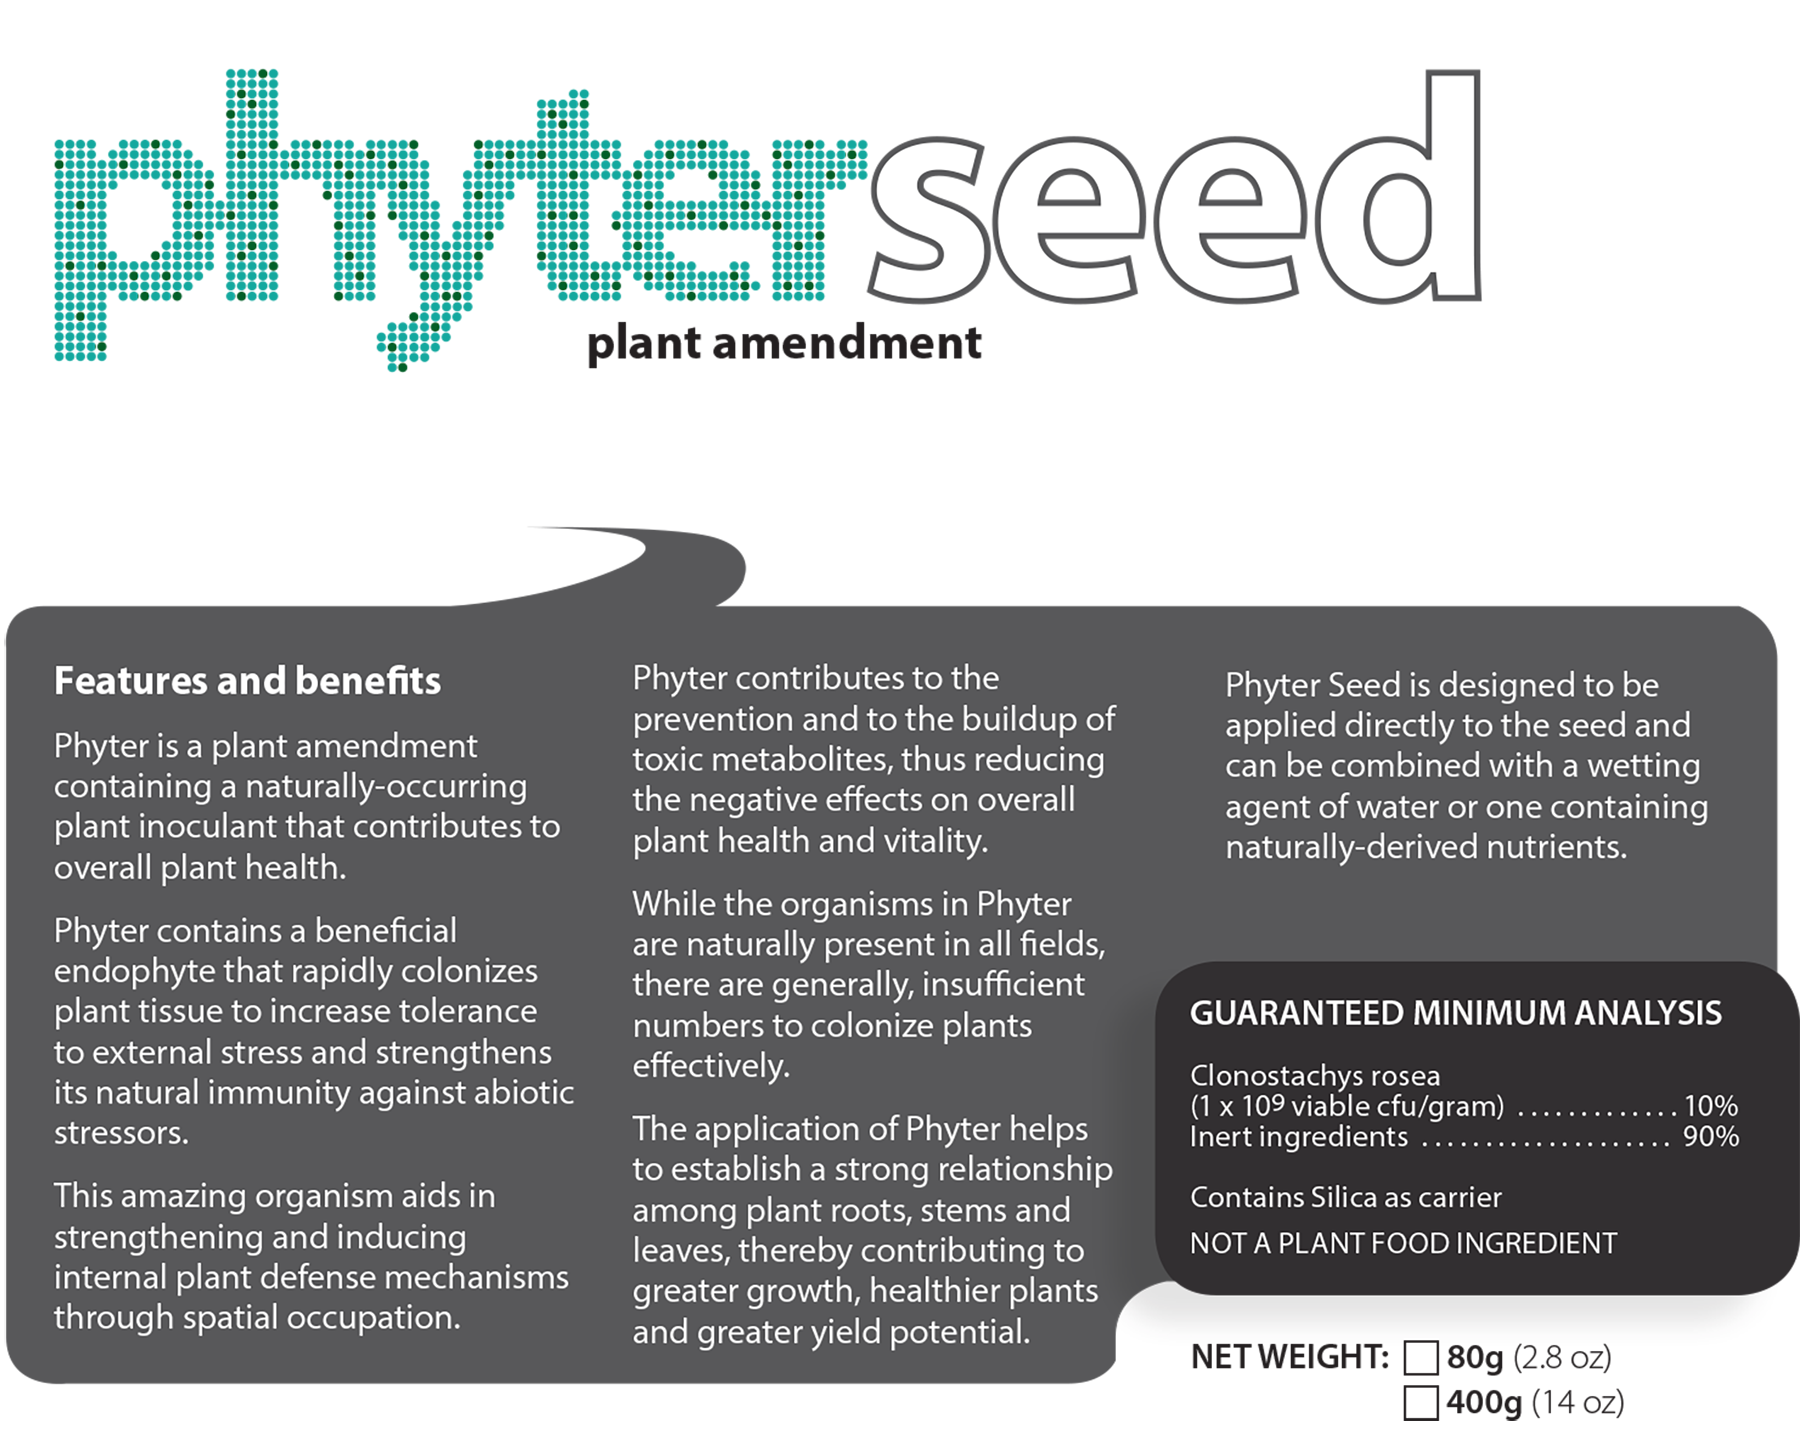 Phyter Seed